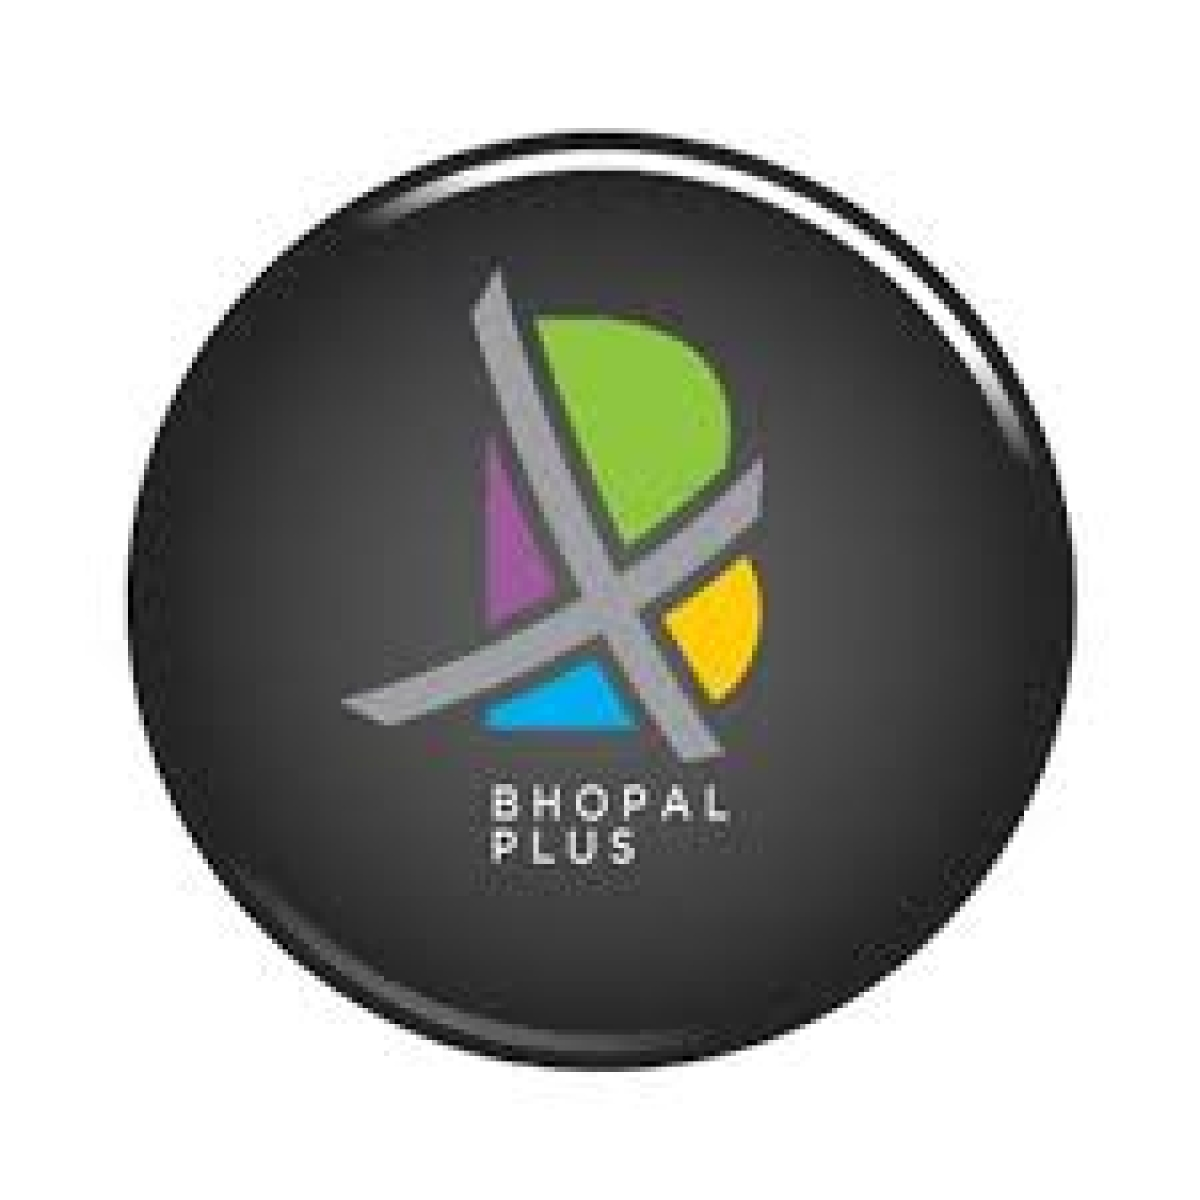 Bhopal: Smart city's 'Bhopal Plus' gets App of the Year award